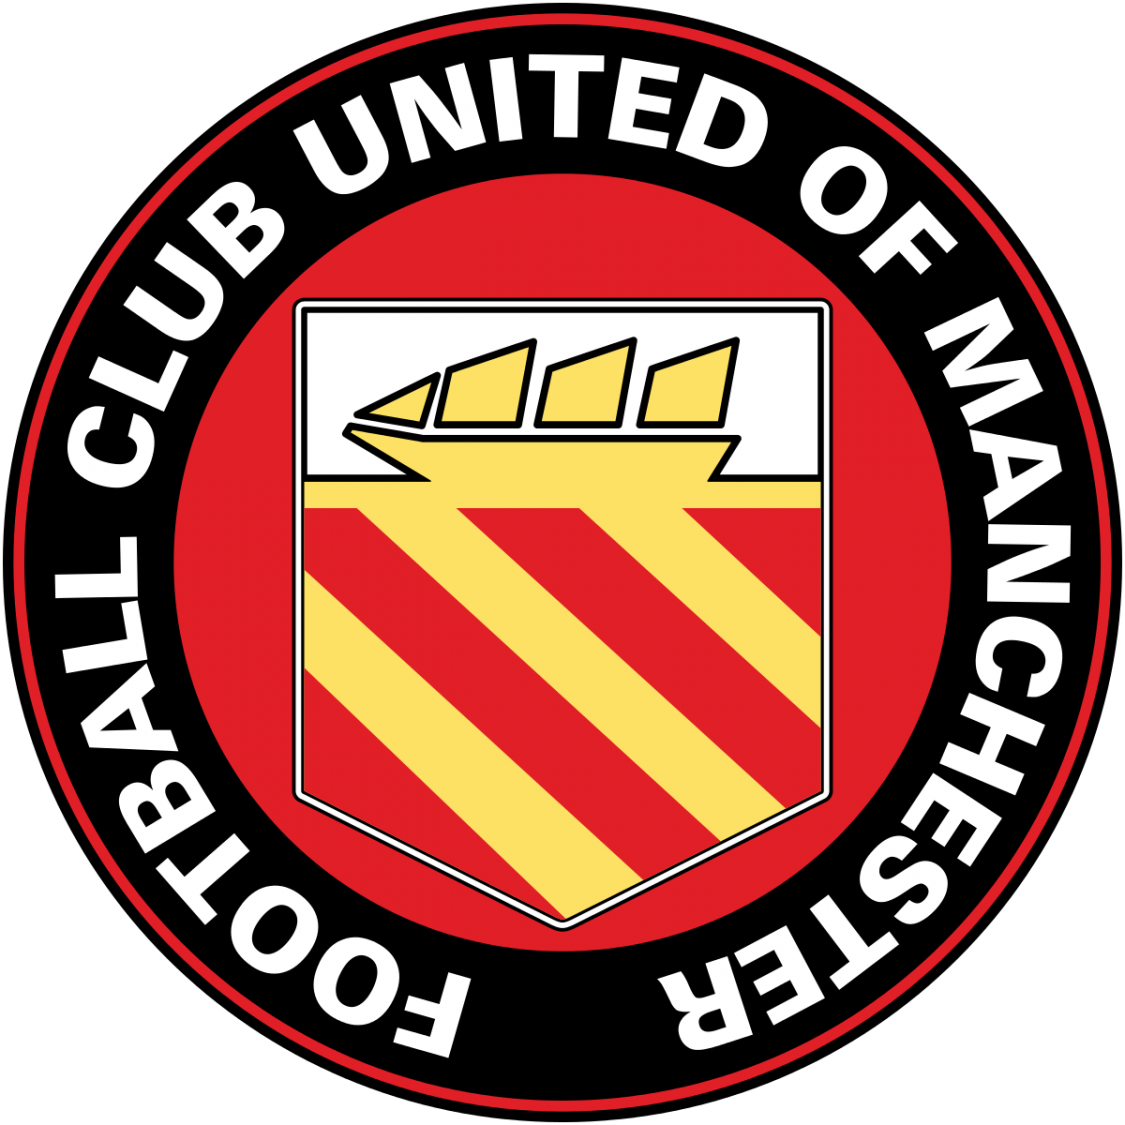 1200px-FC_United_of_Manchester_crest_svg.thumb.png.fede2bcc5d0fabed314bccb9b80968be.png